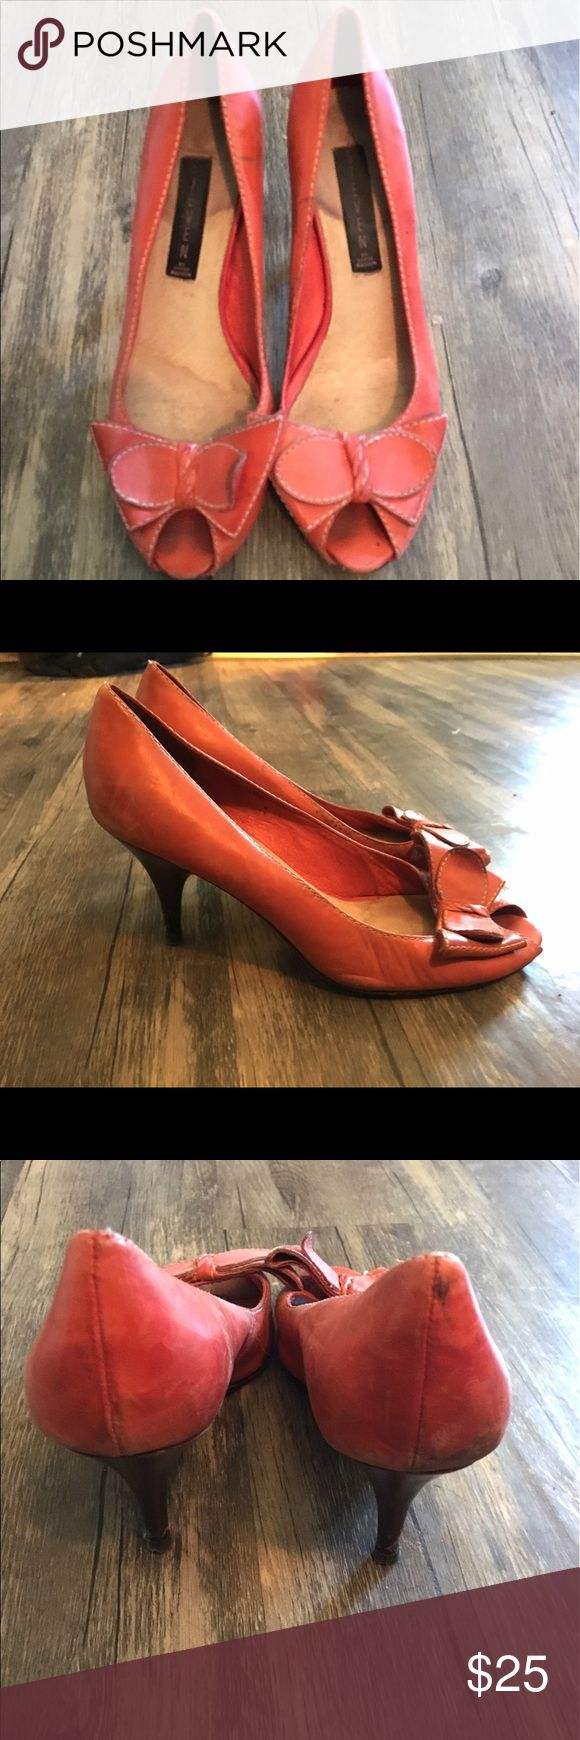 Steve Madden Red Peep Toe Heels Adorable Steven by Steve Madden red peep toe heels. Super cute with a striped top and denim skirt for a chic look. Skirt pictured is available in a separate listing. Bundle three items and save 20%! Steven by Steve Madden Shoes Heels